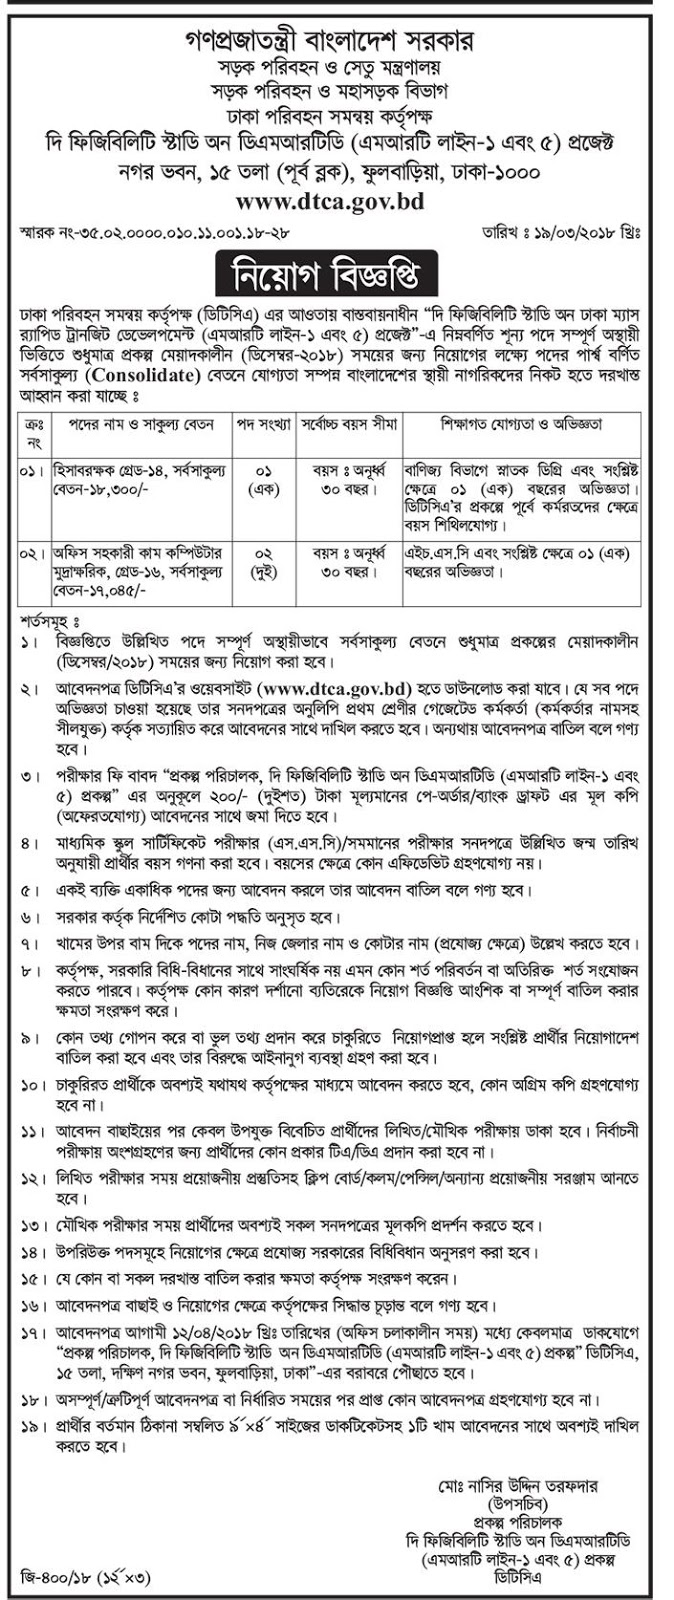 Dhaka Transport Co-ordination Authority (DTCA) Job Circular 2018